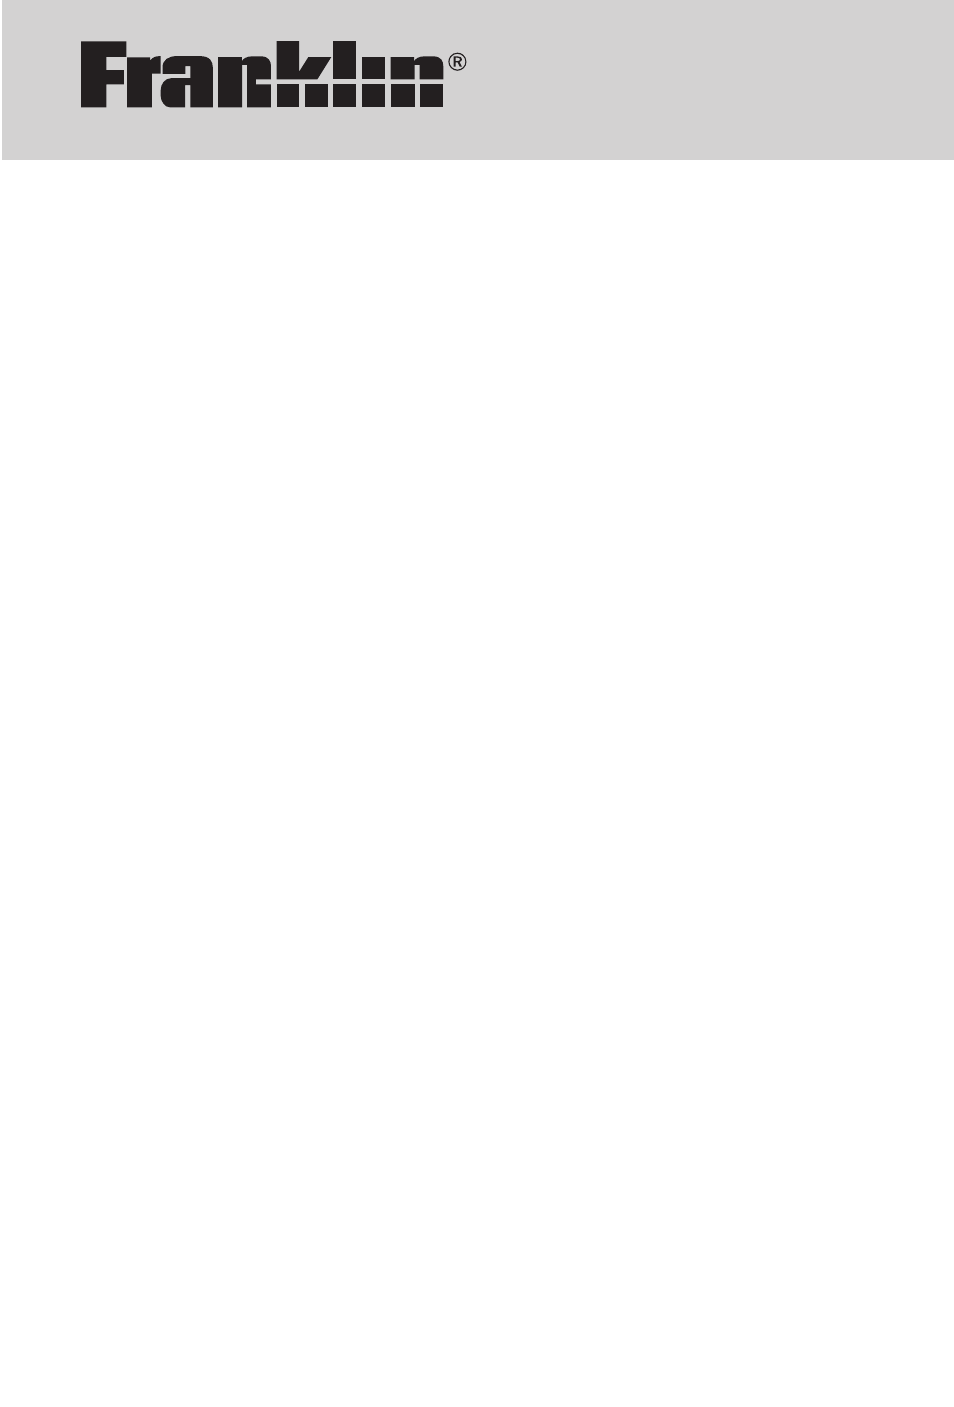 franklin spelling ace pro puzzle solver sa 309 user manual 24 pages